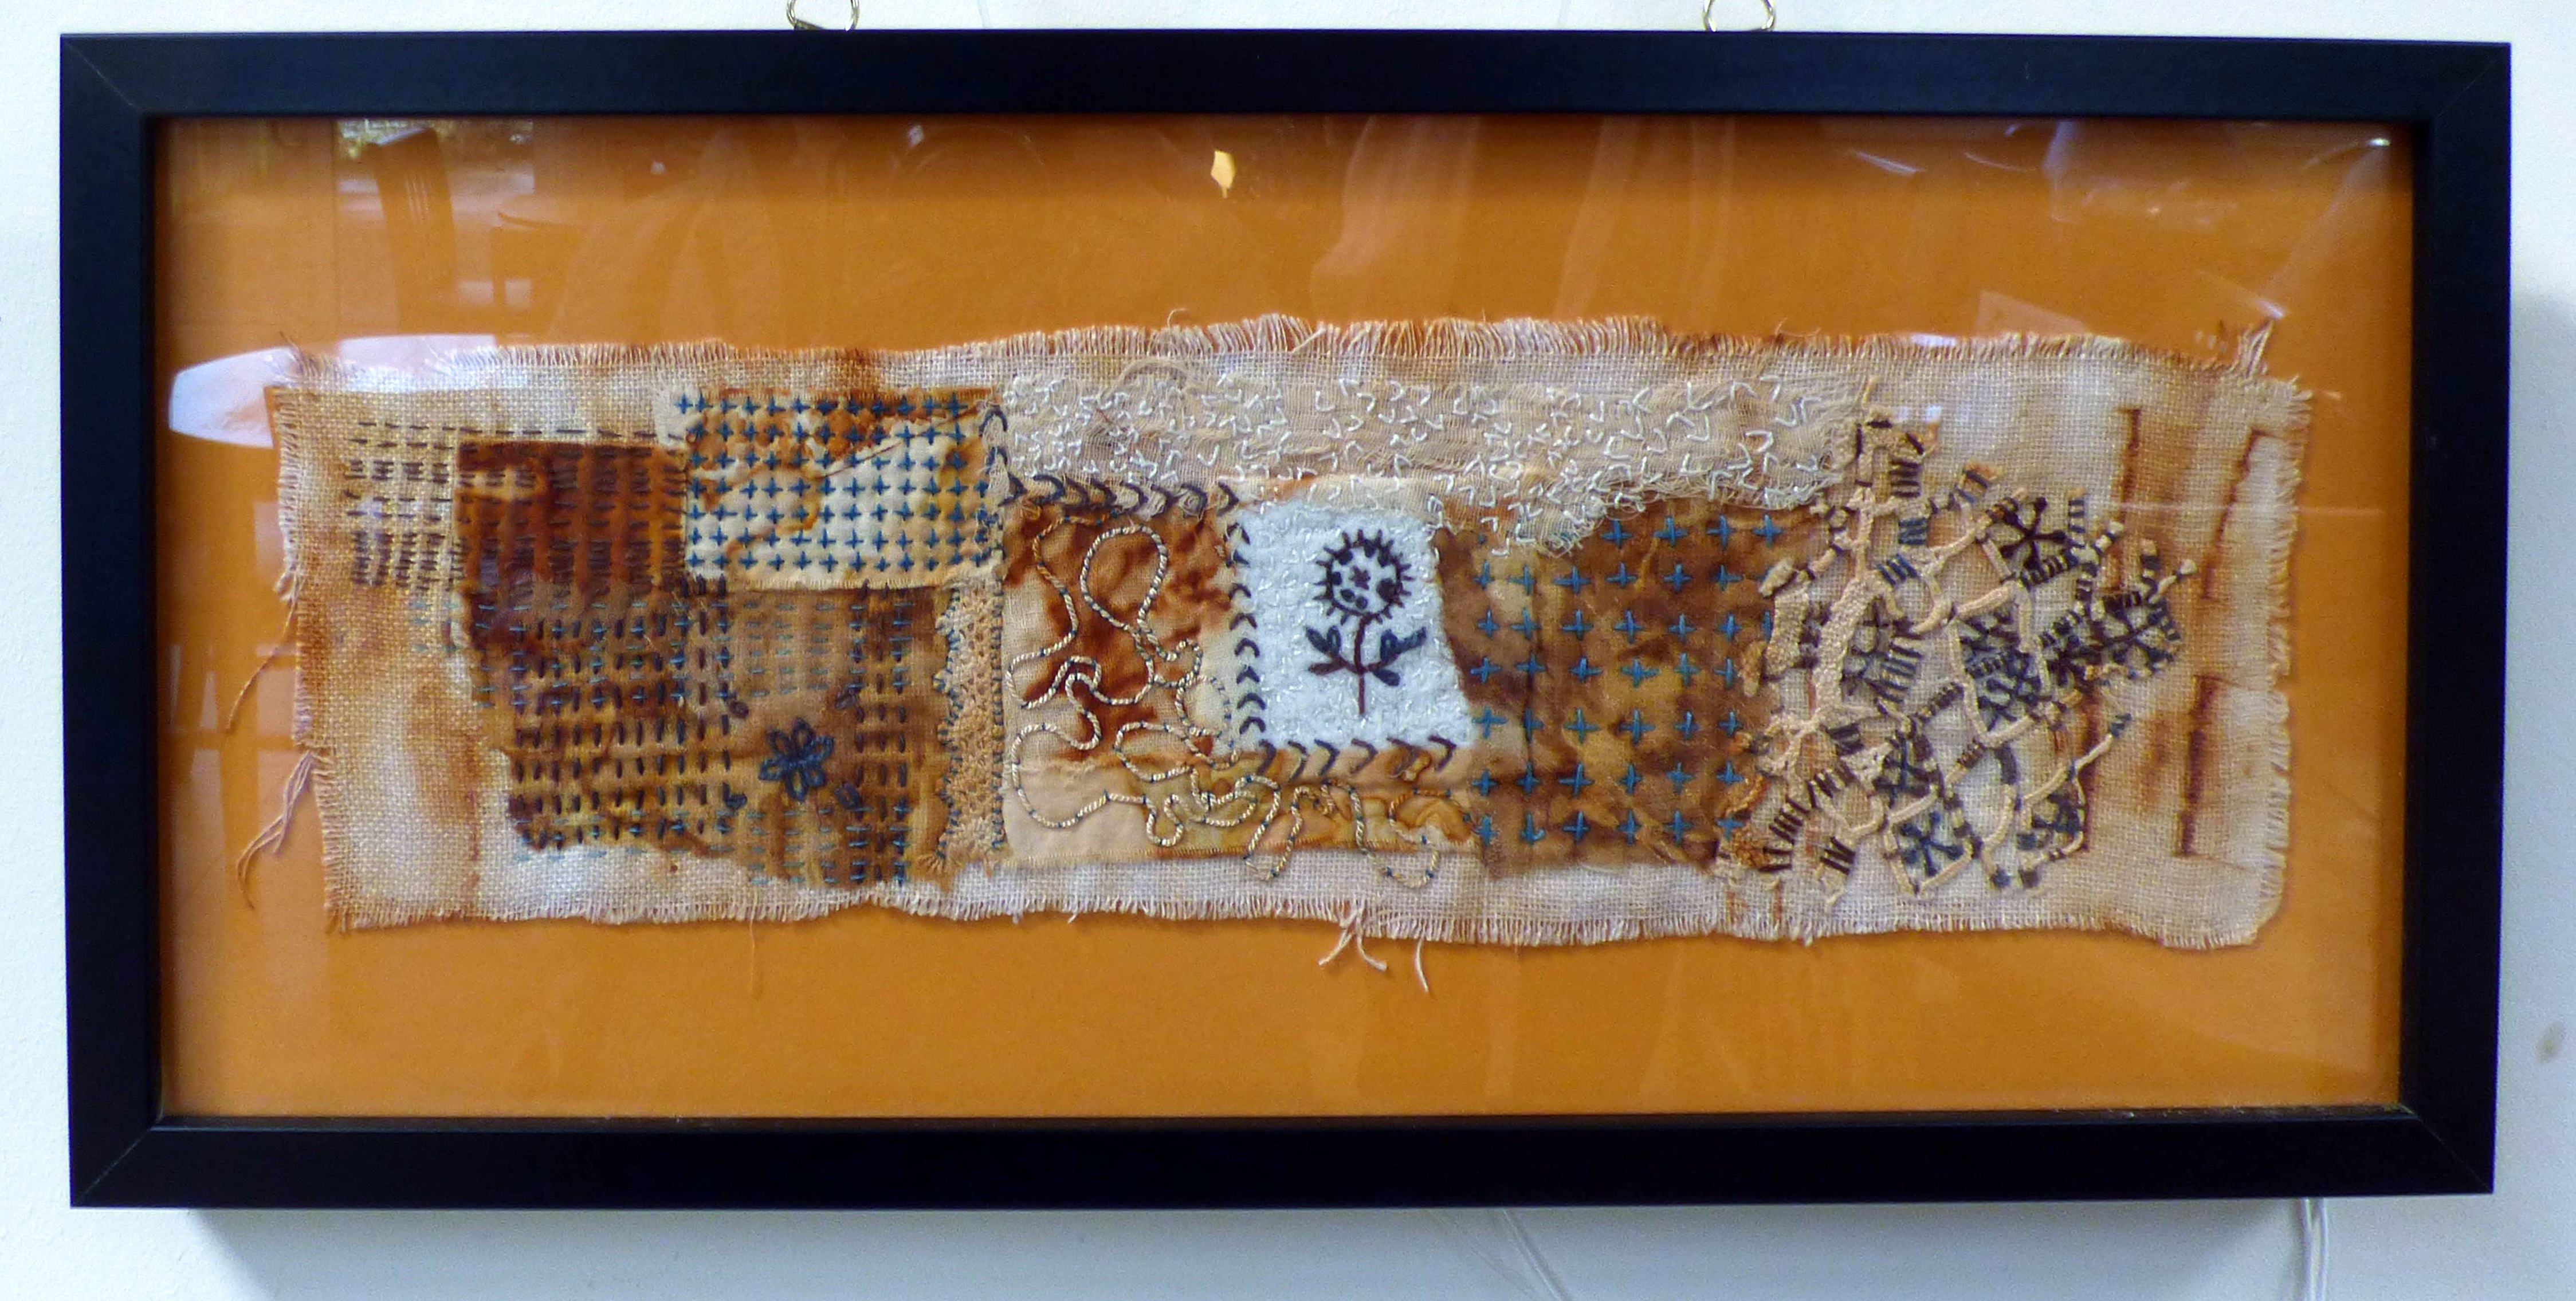 RUST IN PEACE by Jane Holmes, Natural Progression Textile Group, Jan 2020